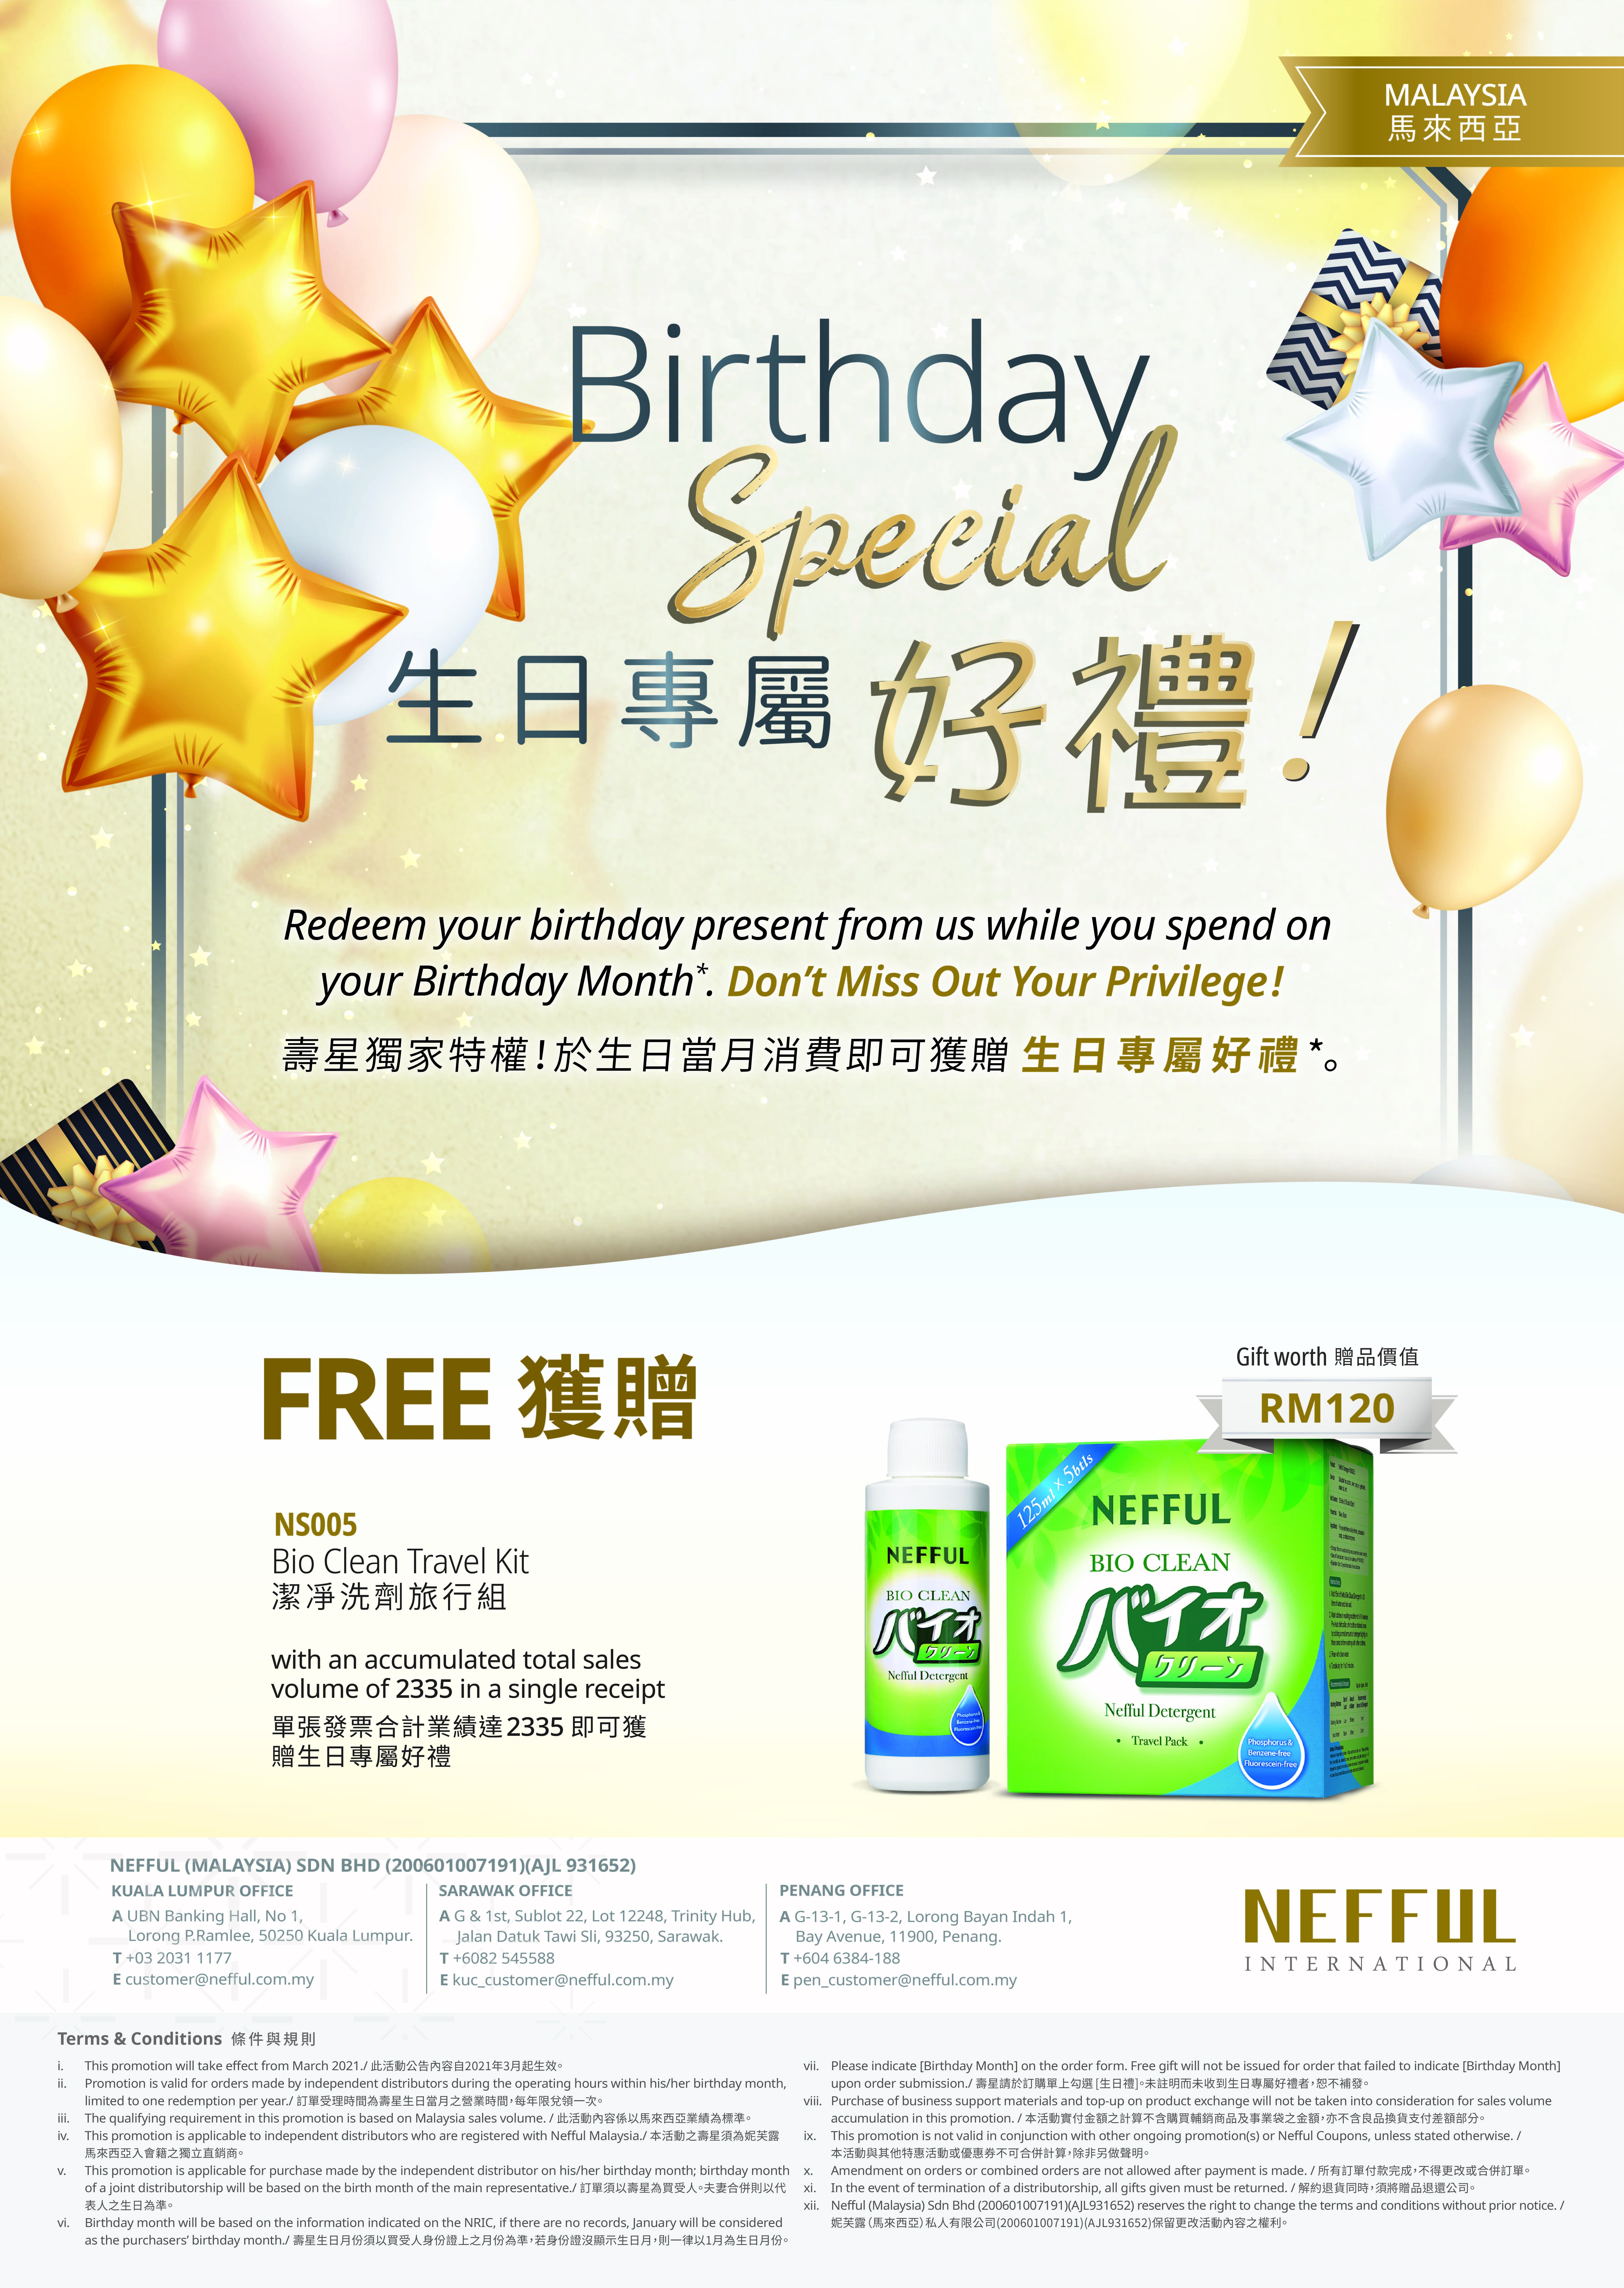 NFMY_Birthday Promotion Poster 2020 FA_1